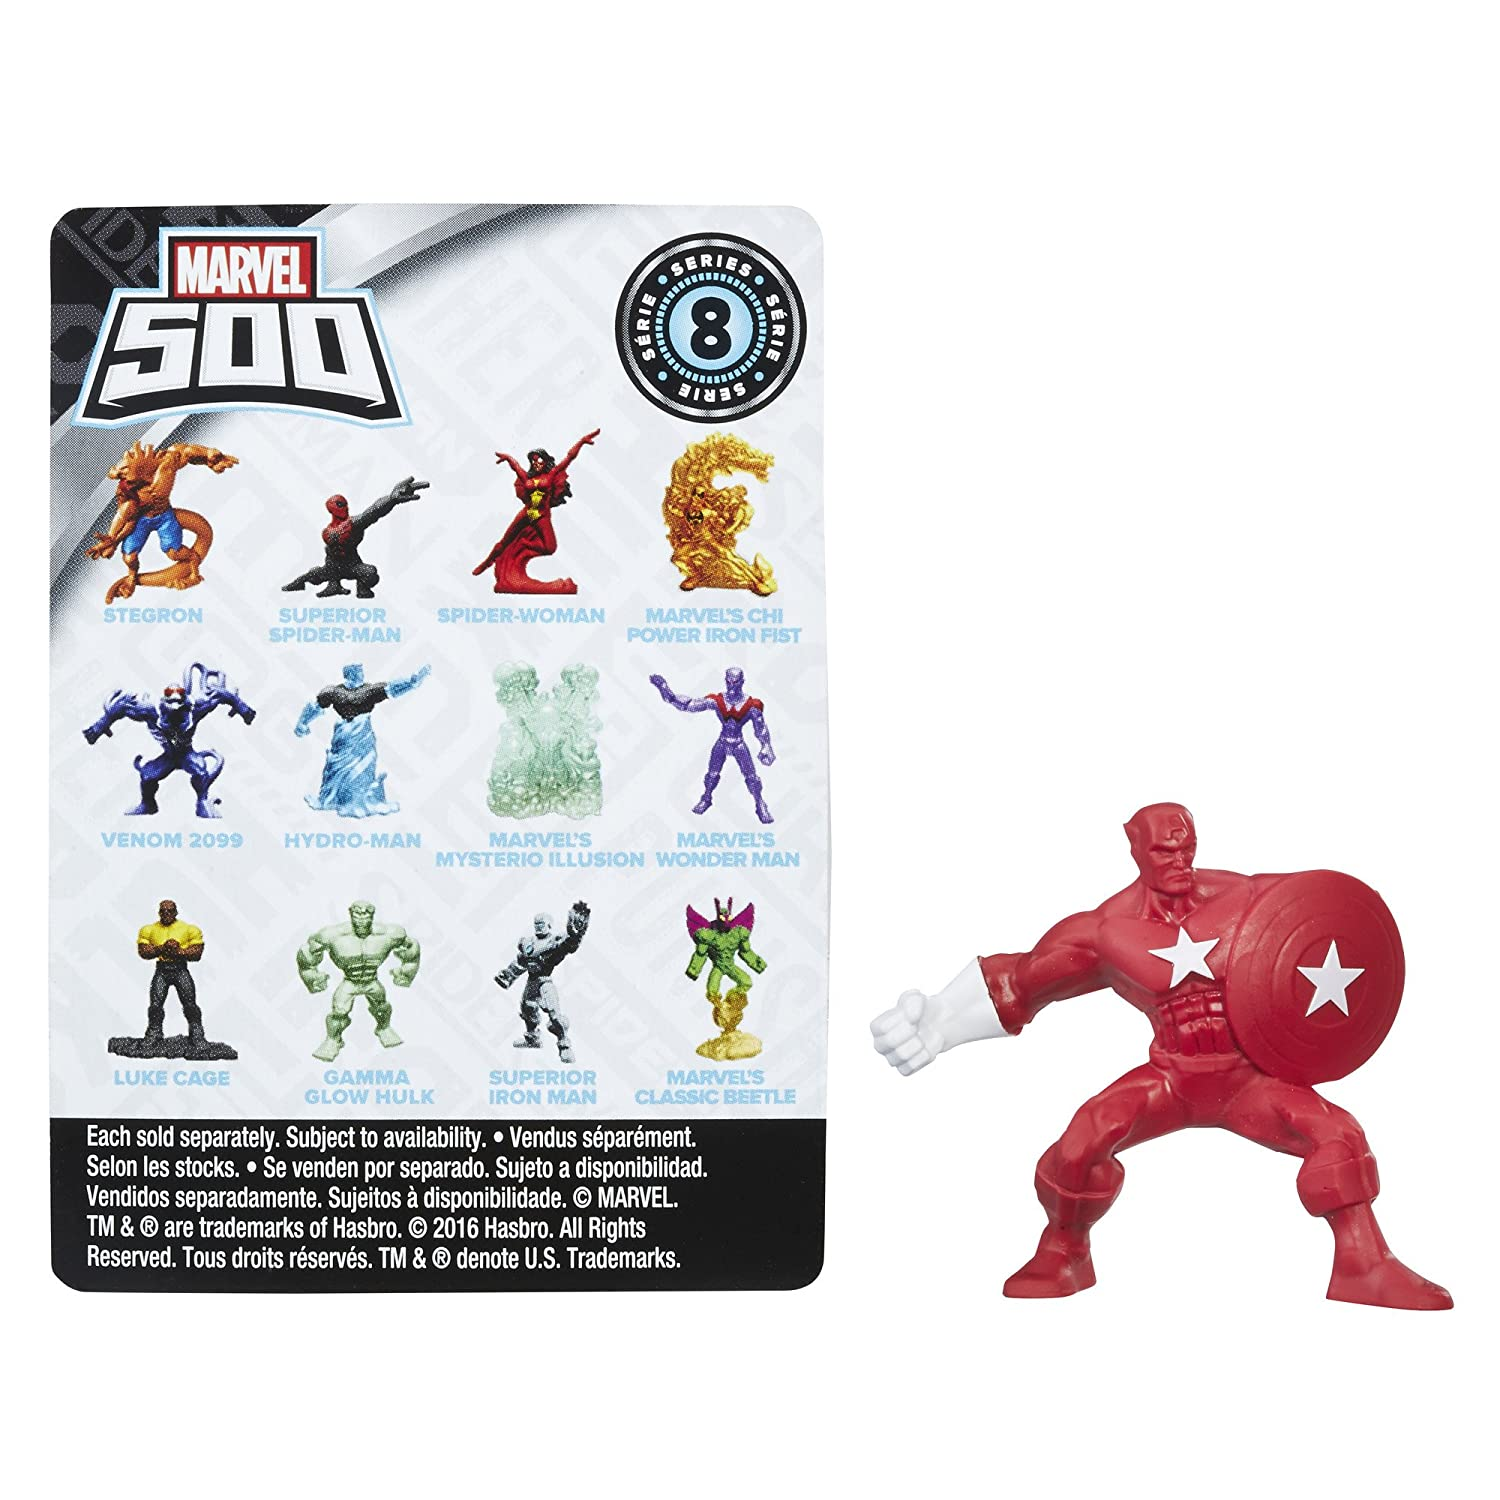 Marvel 500 Series 8 SPIDER-SLAYER JAMESON Figure